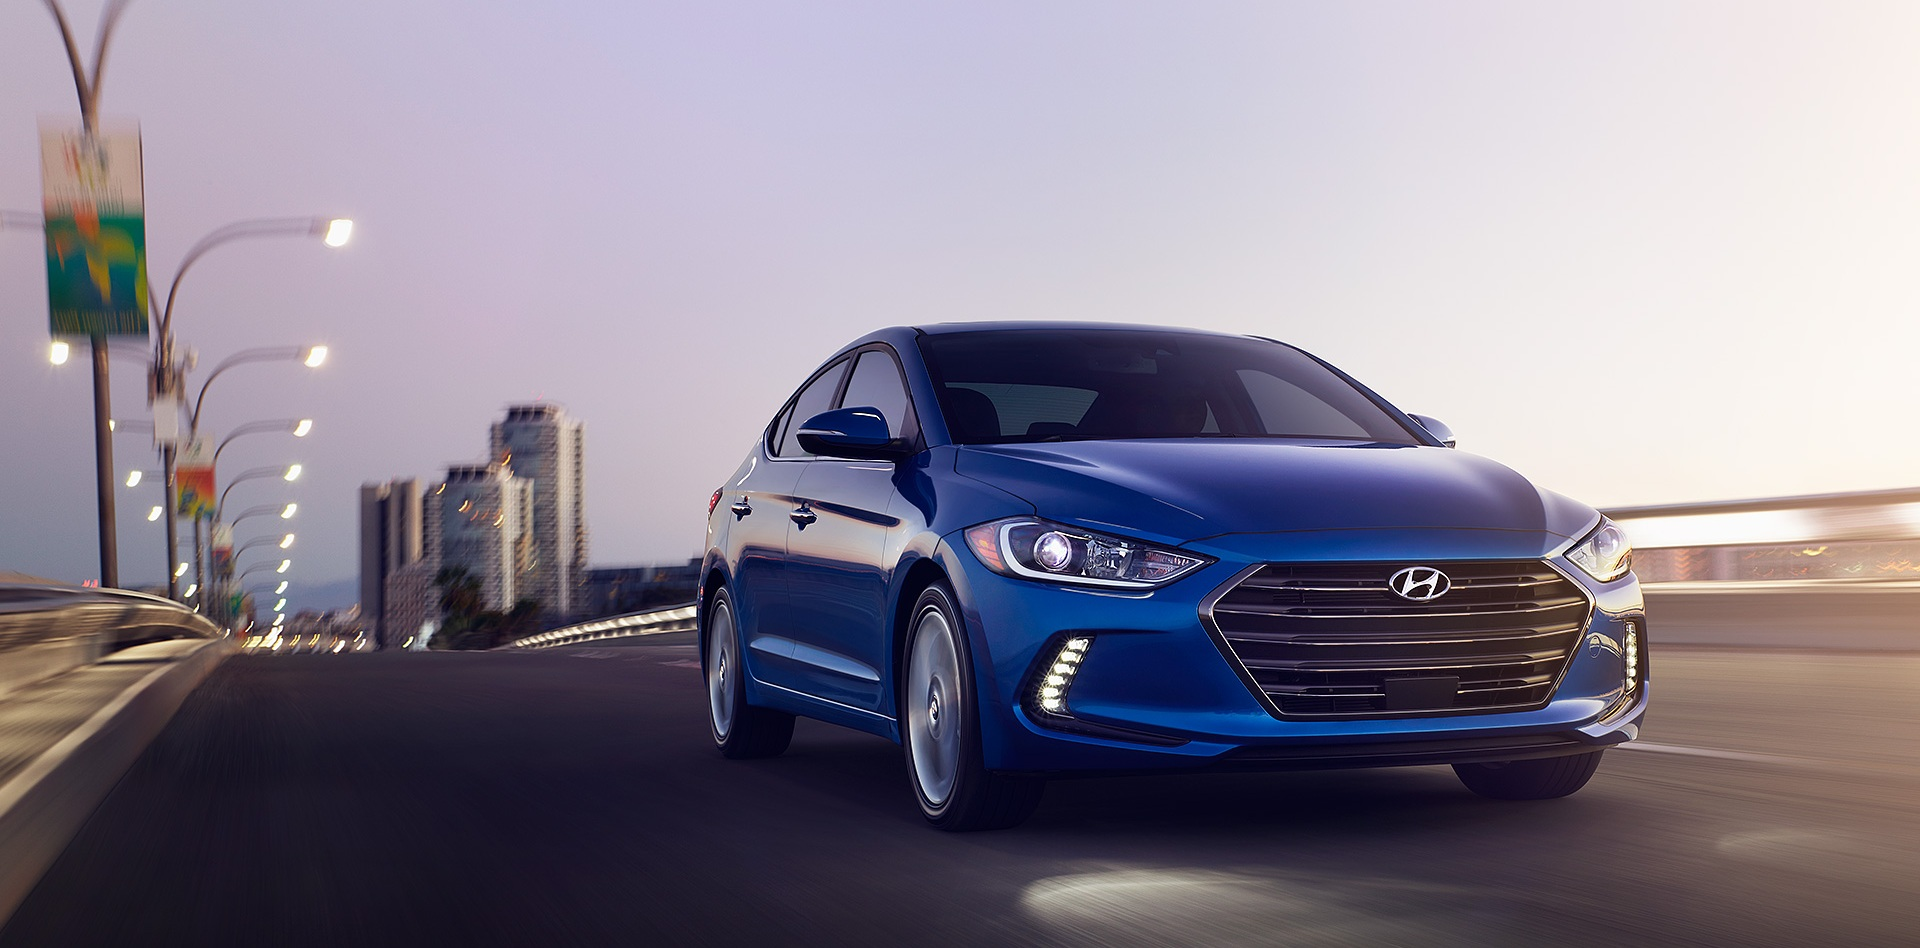 2017-Elantra-01-Electric_Blue